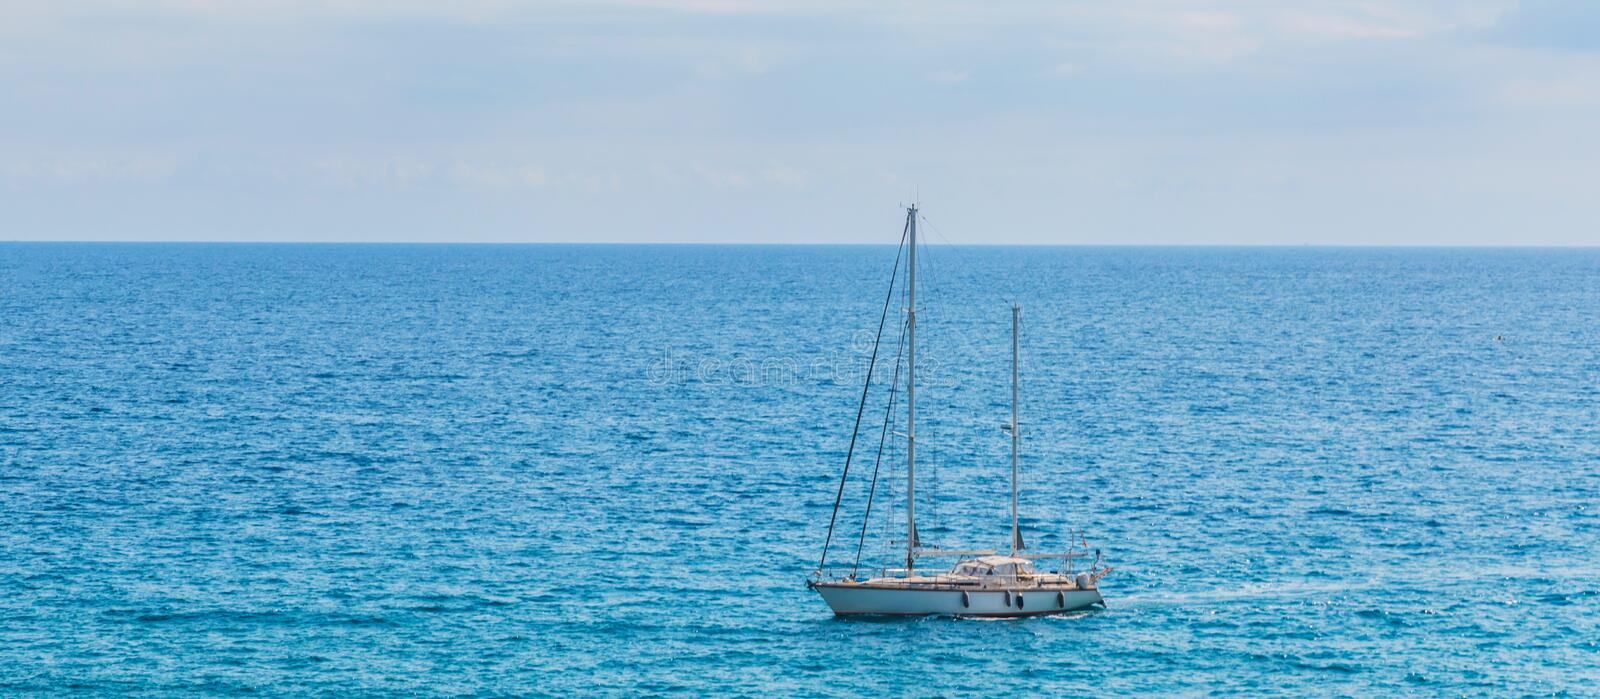 Yacht sailing the sea, clear sky and blue water, recreational sp royalty free stock photography